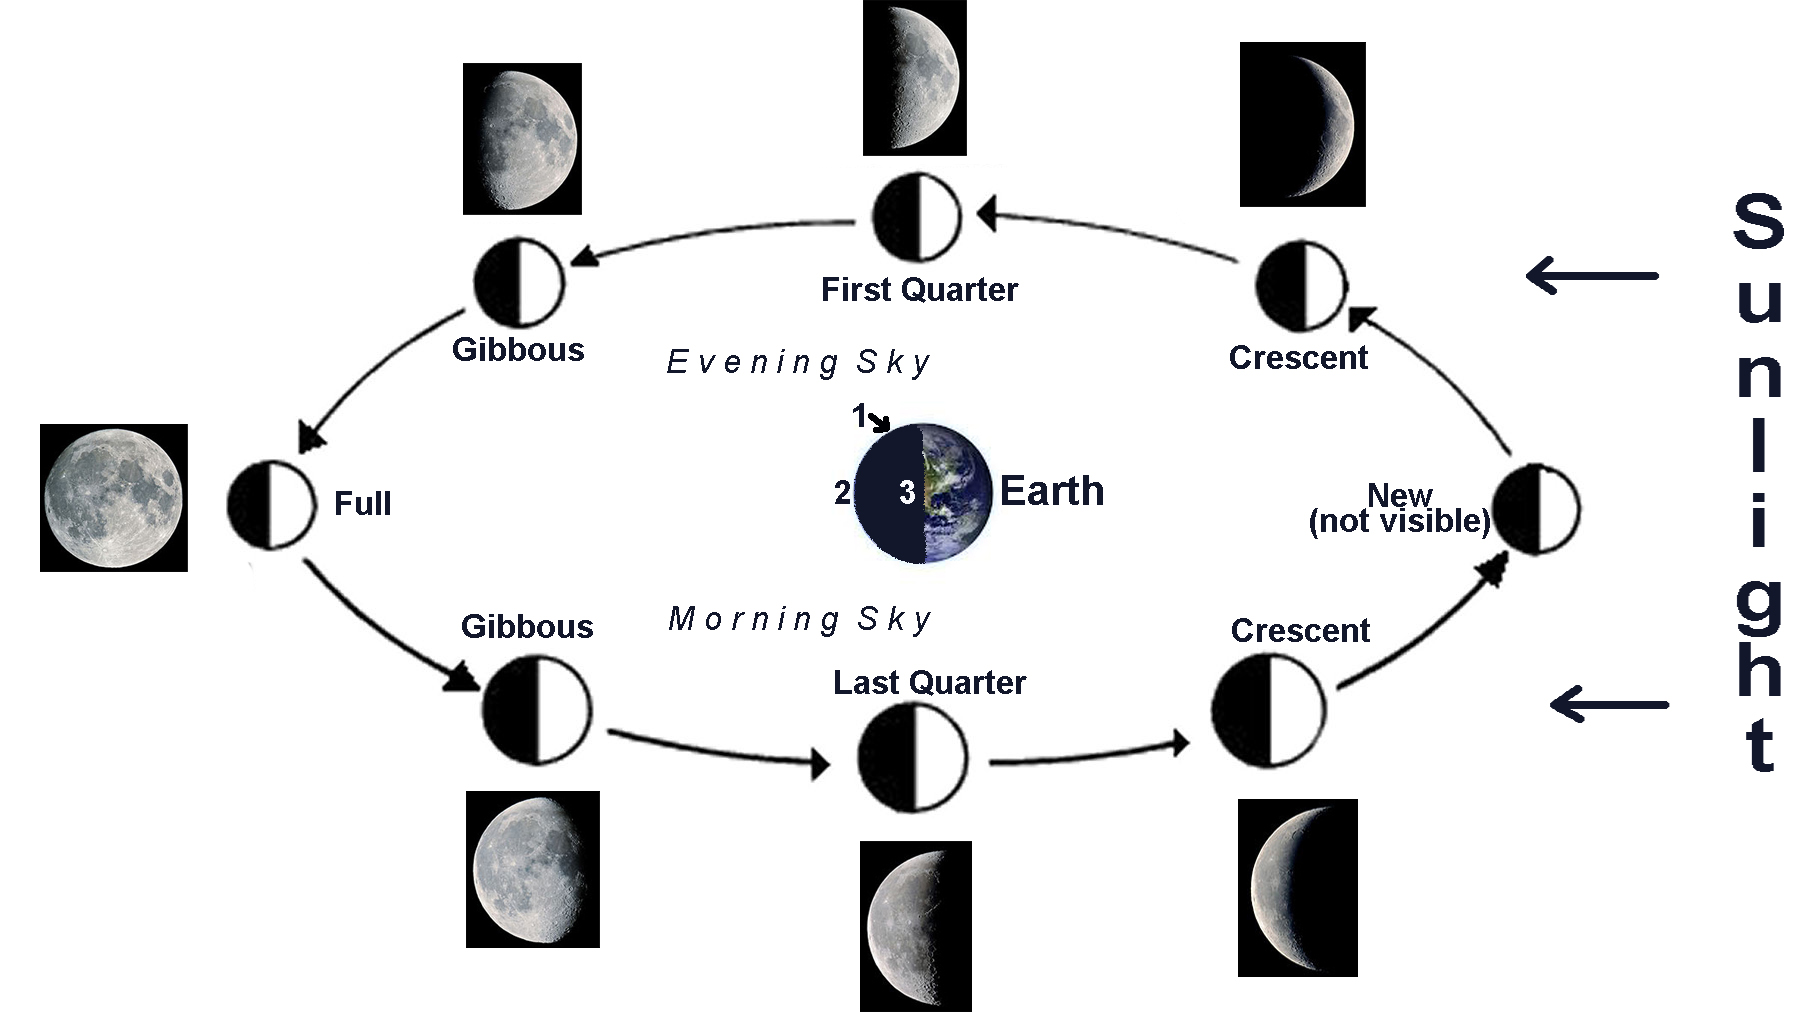 Moon Phases Diagram Phase of moon diagram